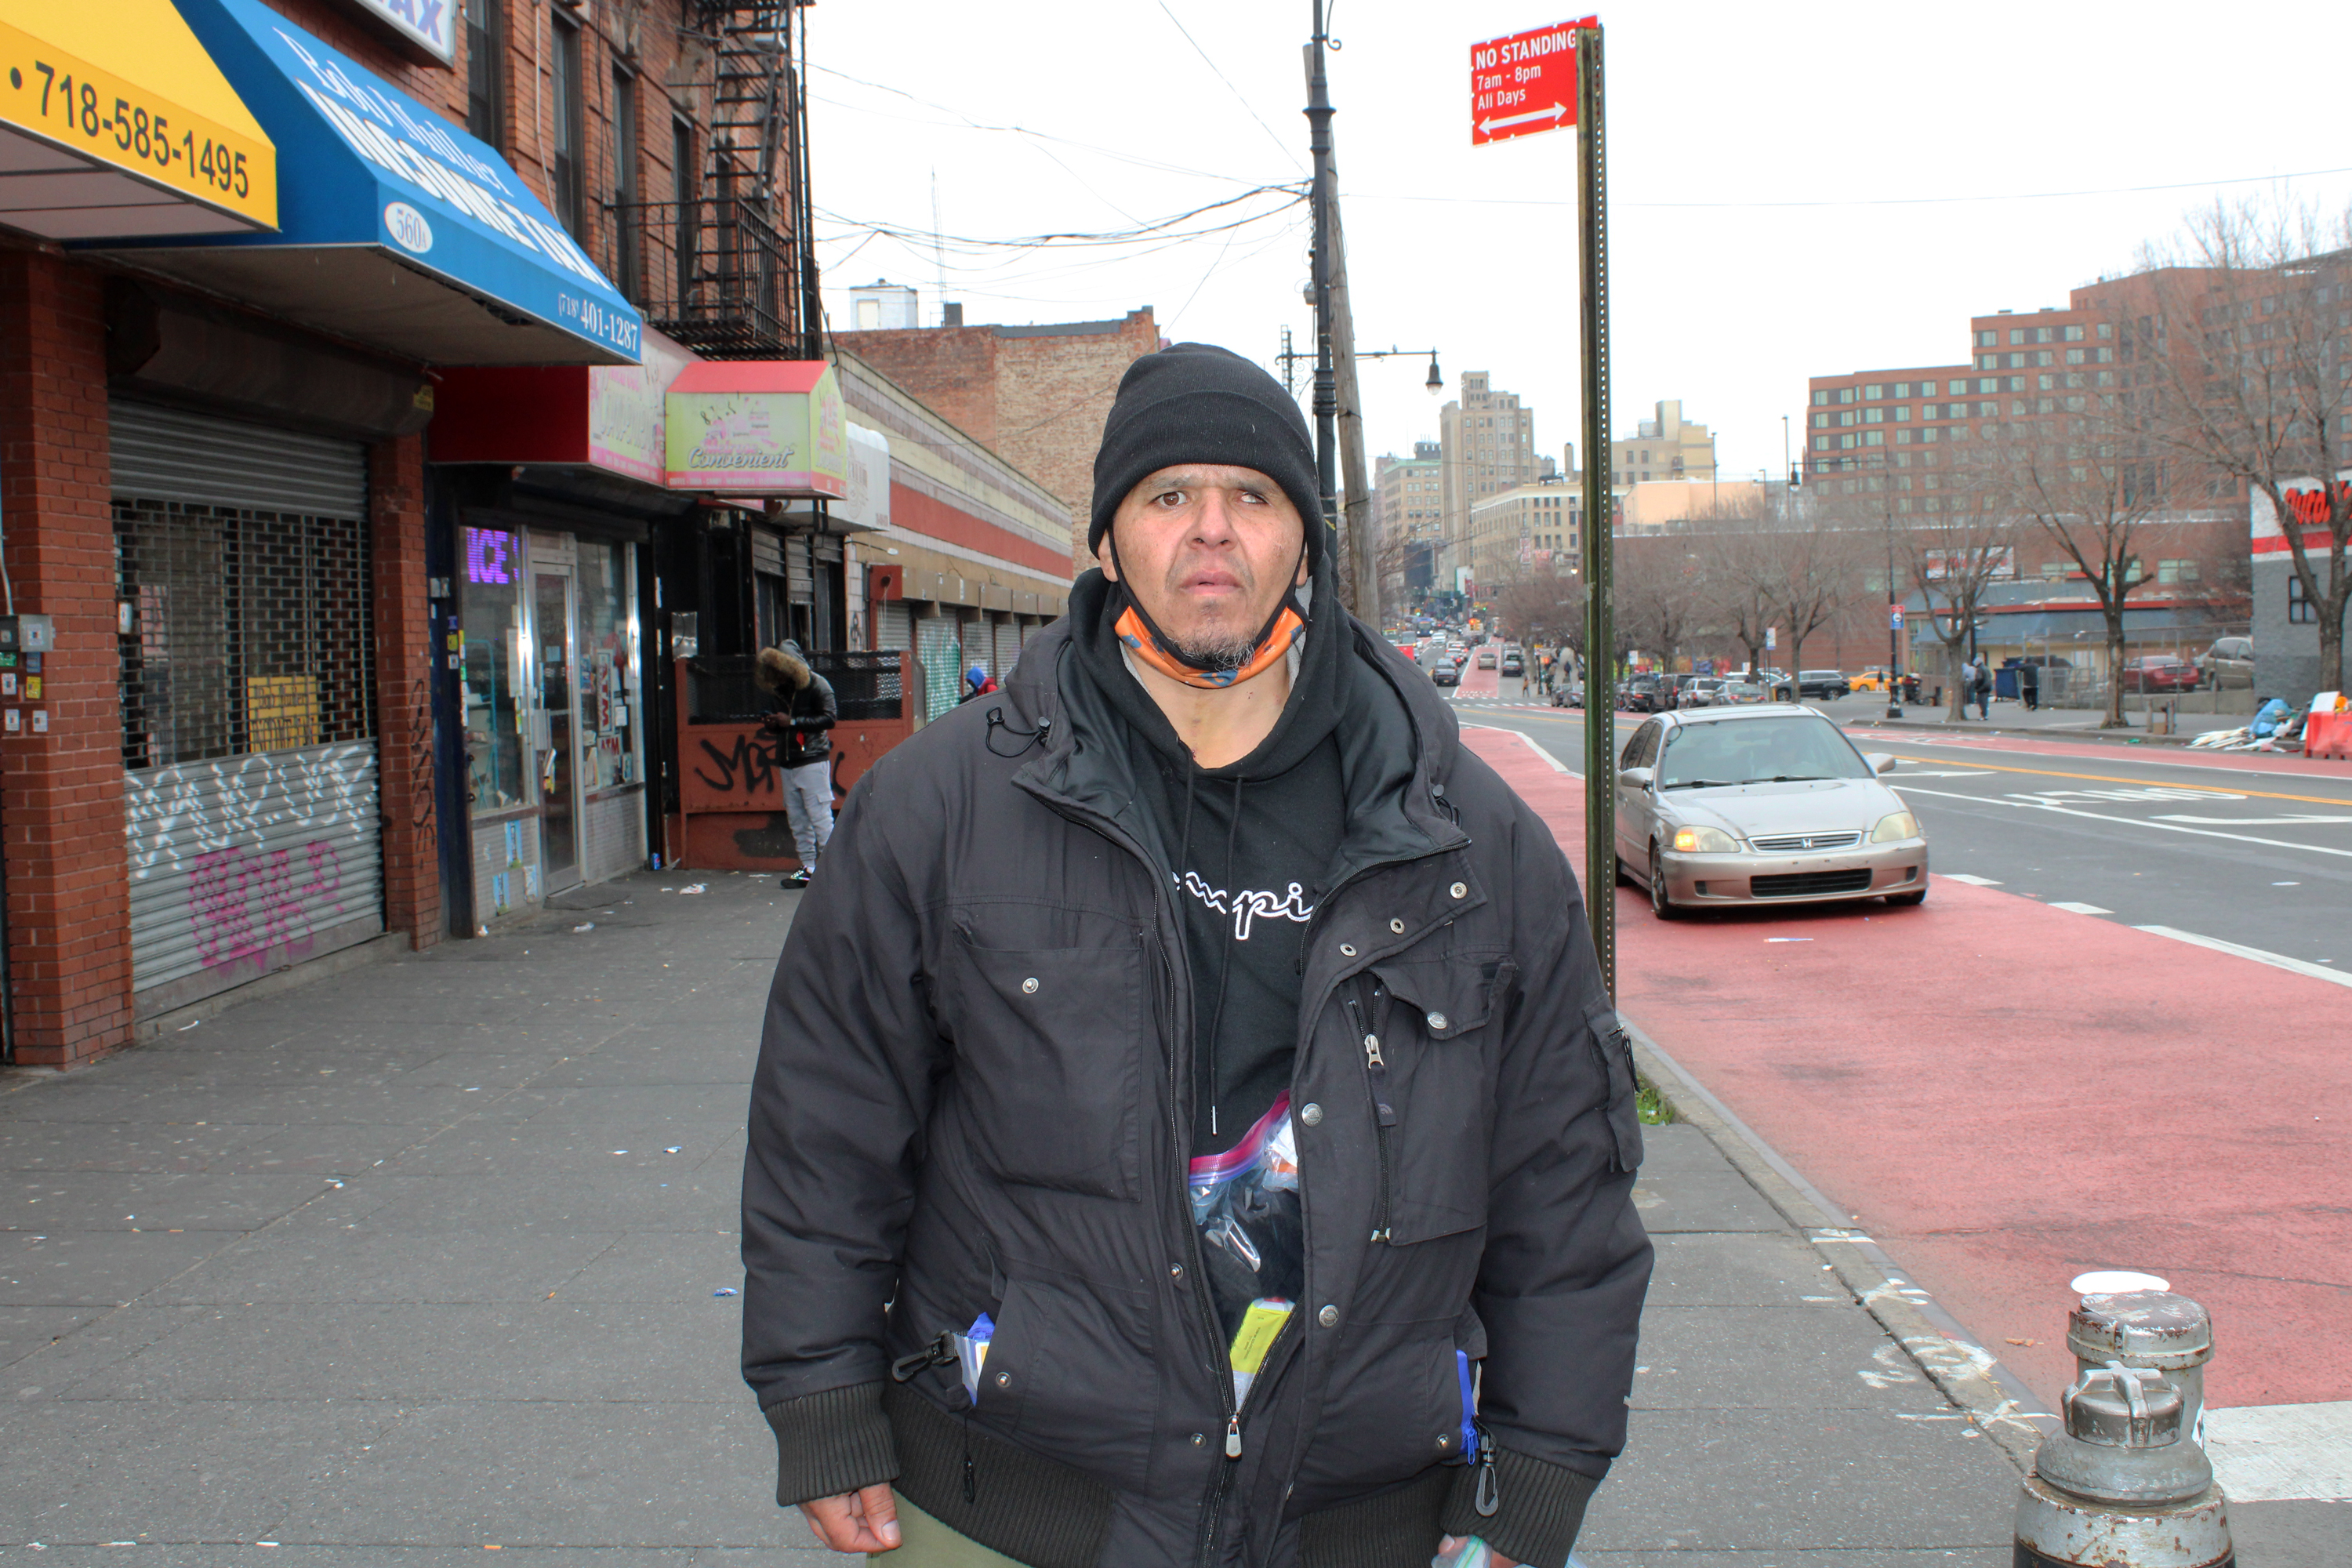 Angel Melendez carries multiple Narcan bottles on him, since, he says, overdoses have spiked in the 'The Hub,' the South Bronx neighborhood where he and others inject drugs. He has reversed at least six overdoses in the past few months, he says.